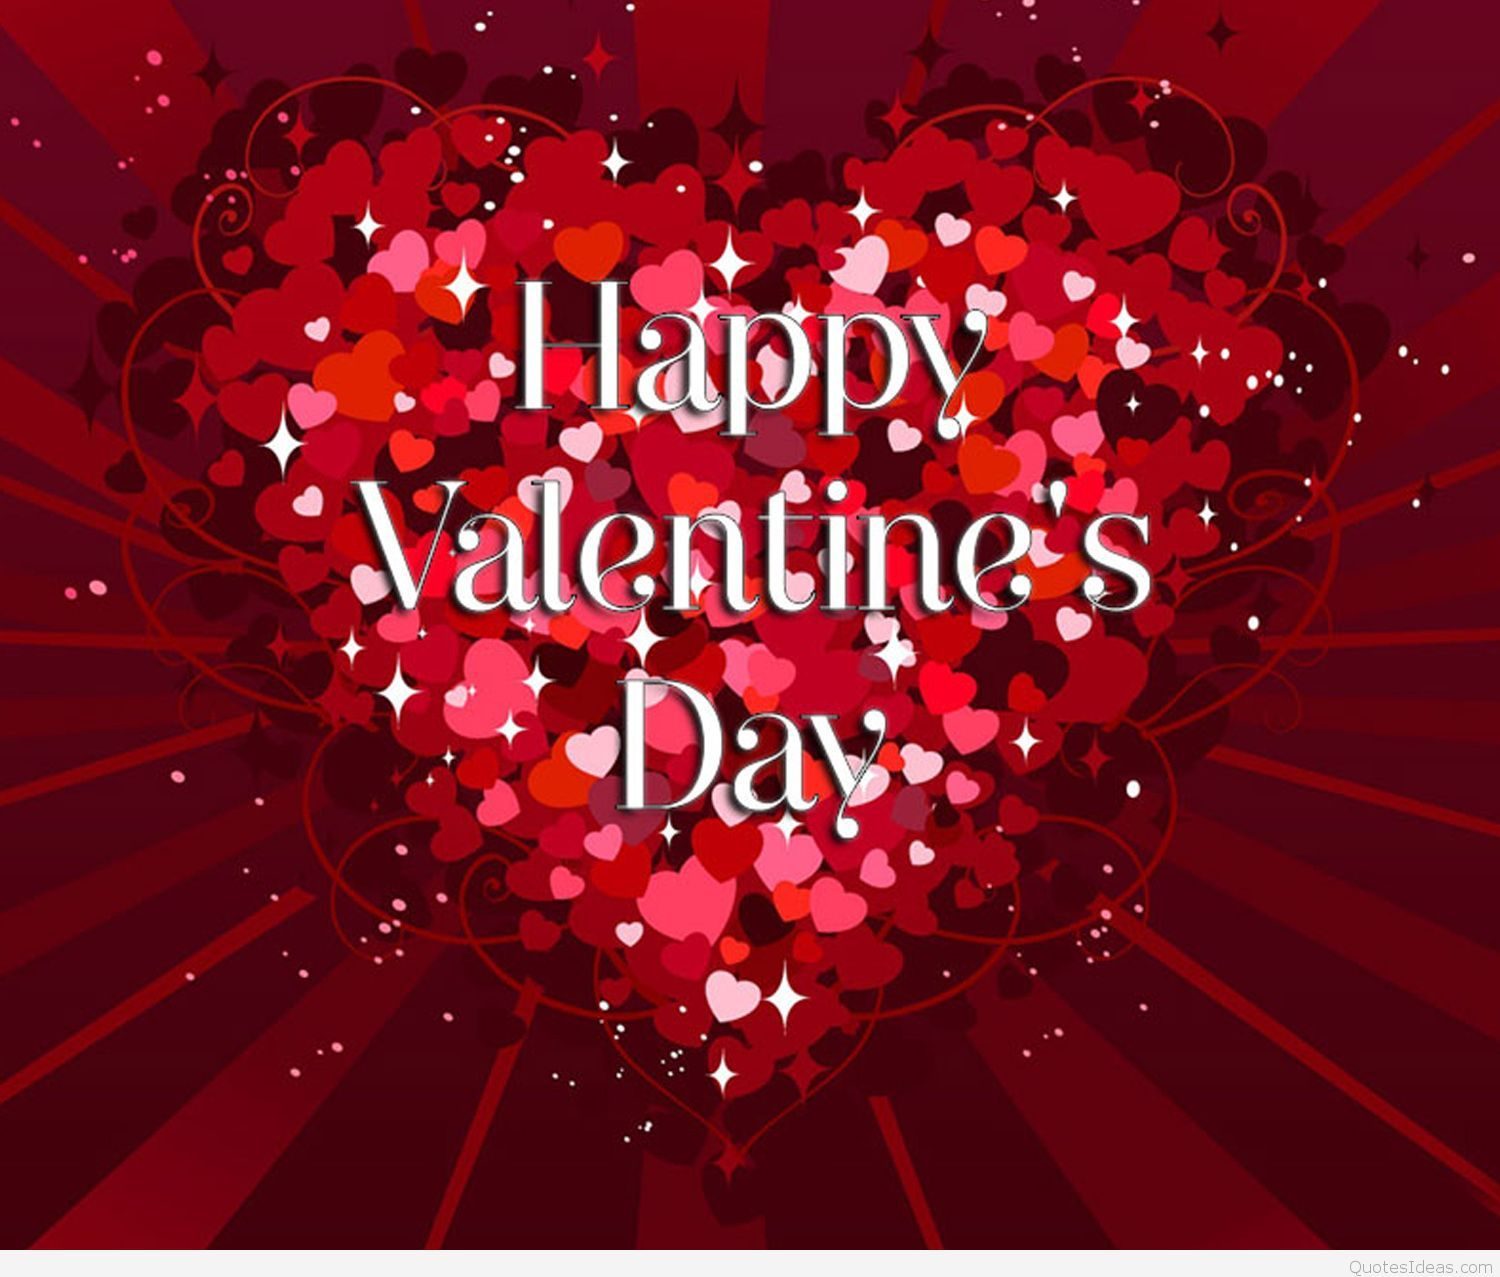 valentine day images pictures wallpapers free download